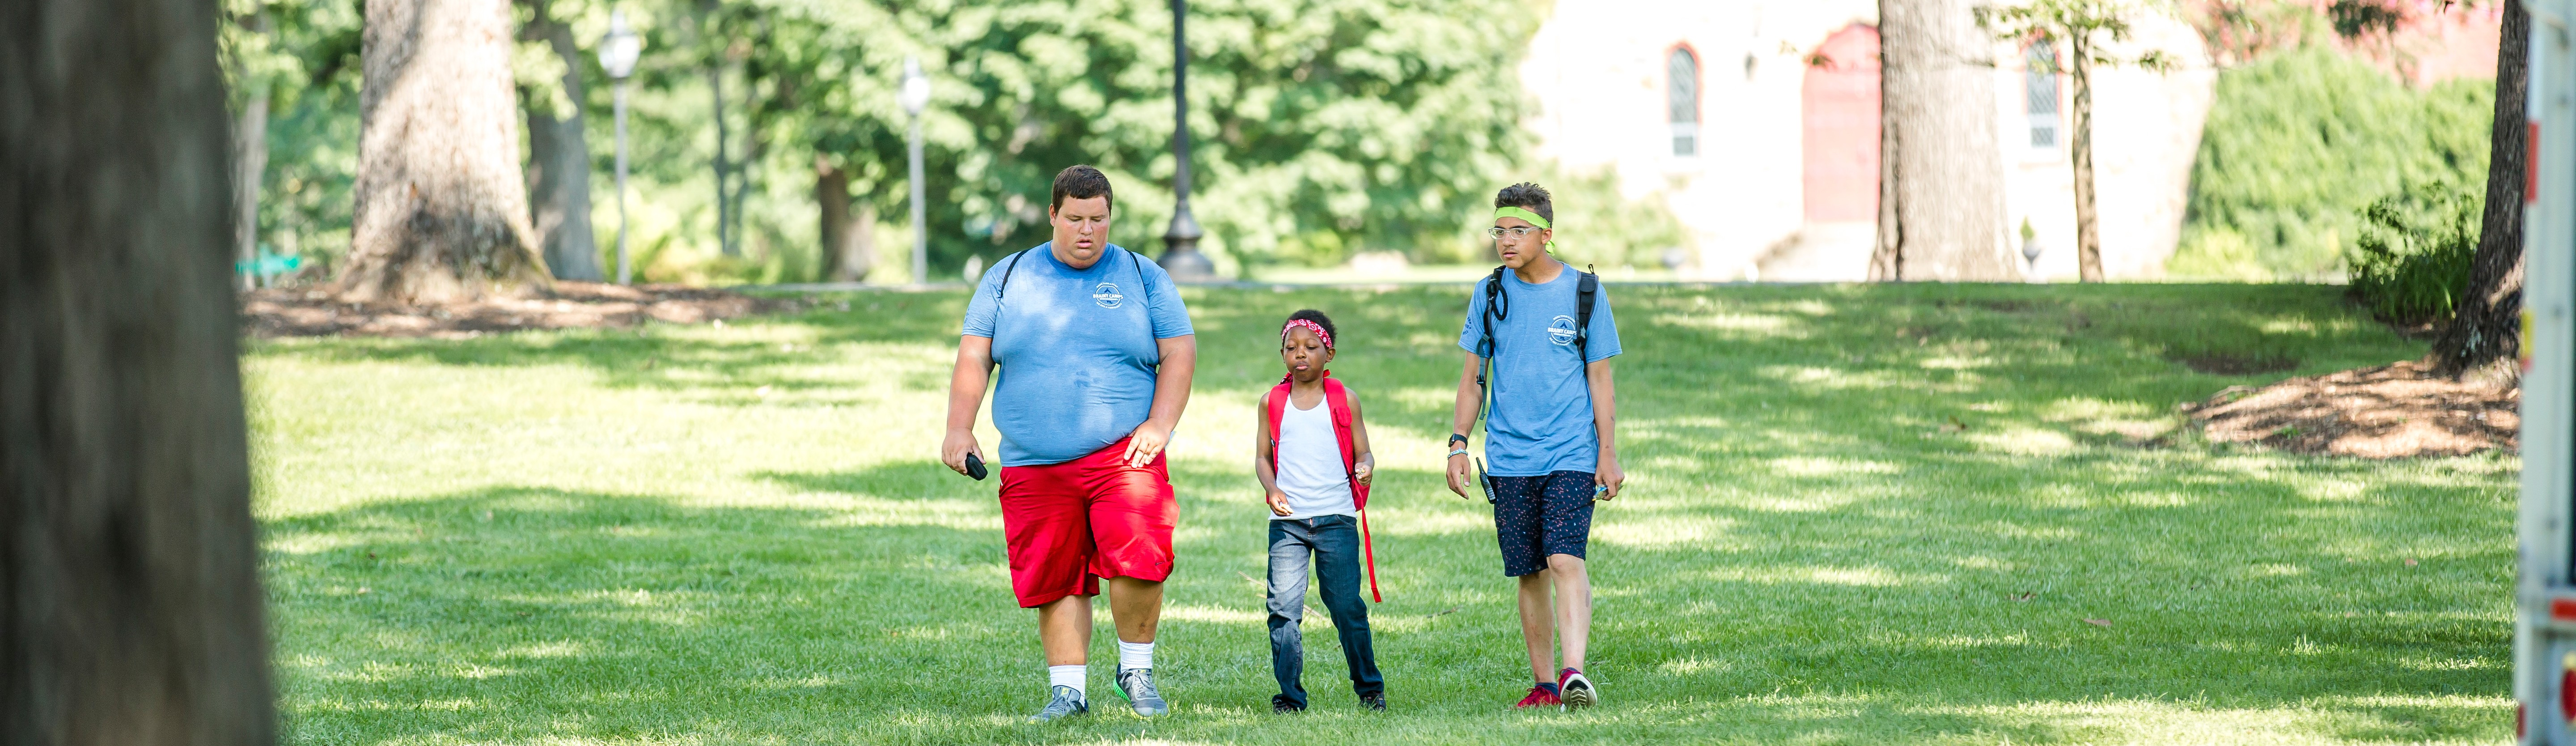 Two counselors walk with a young camper.